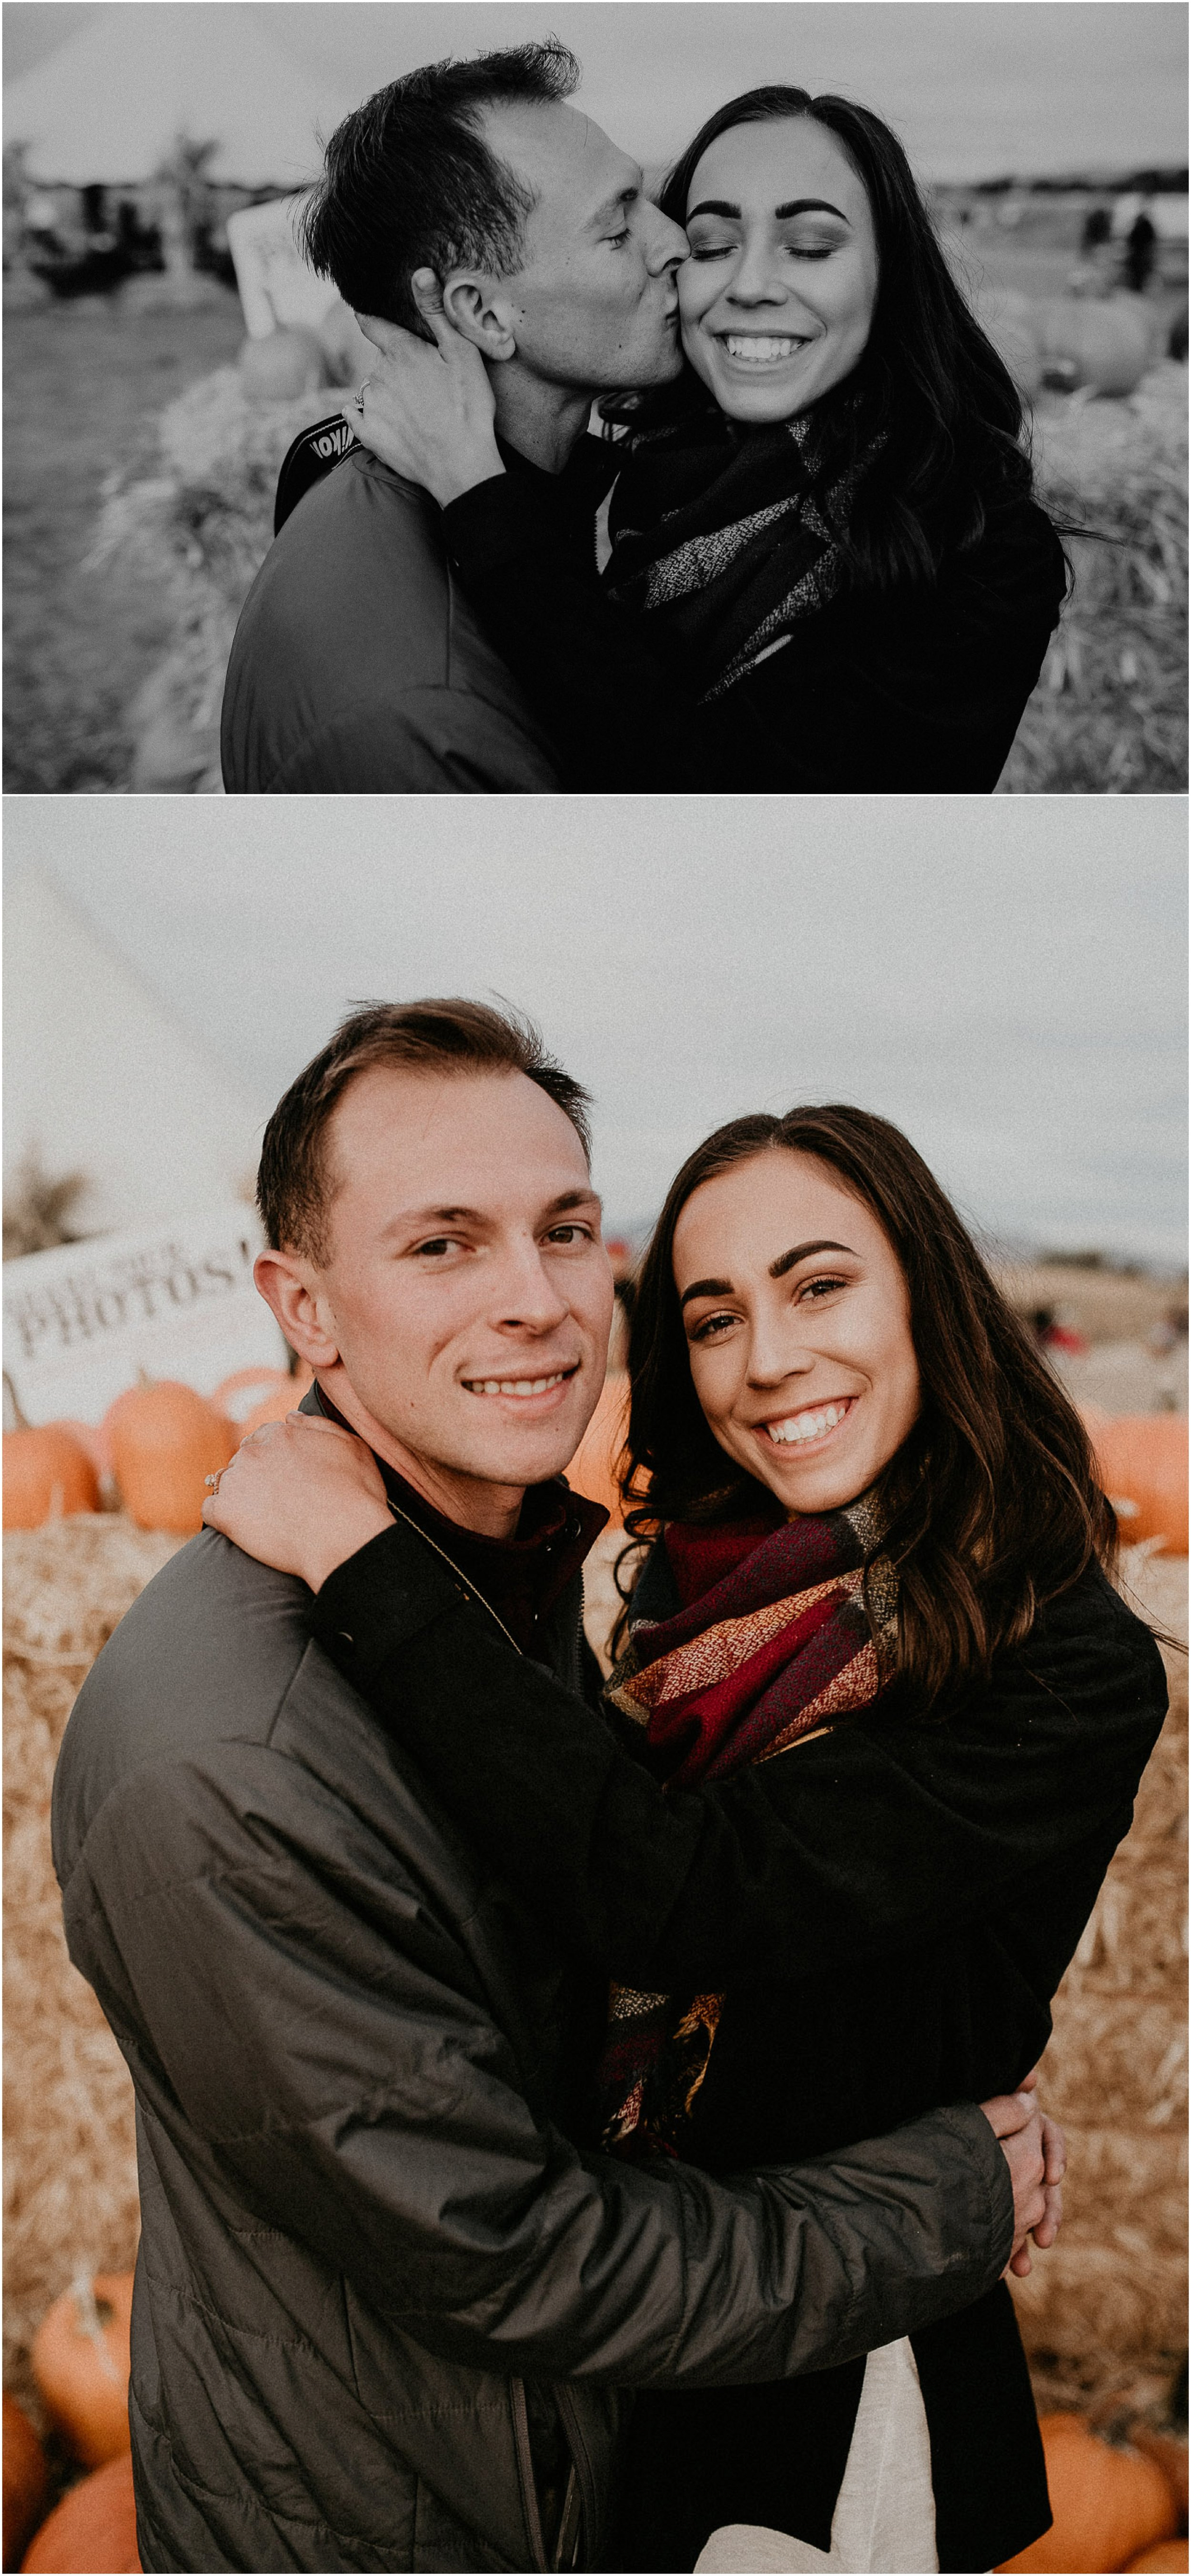 Boise Senior Boudoir Wedding Photographer Makayla Madden Photography Idaho Farmstead Corn Maze Fall Portrait Outfit Ideas Inspiration Plaid Scarf Pumpkin Patch Couples Engagement Session